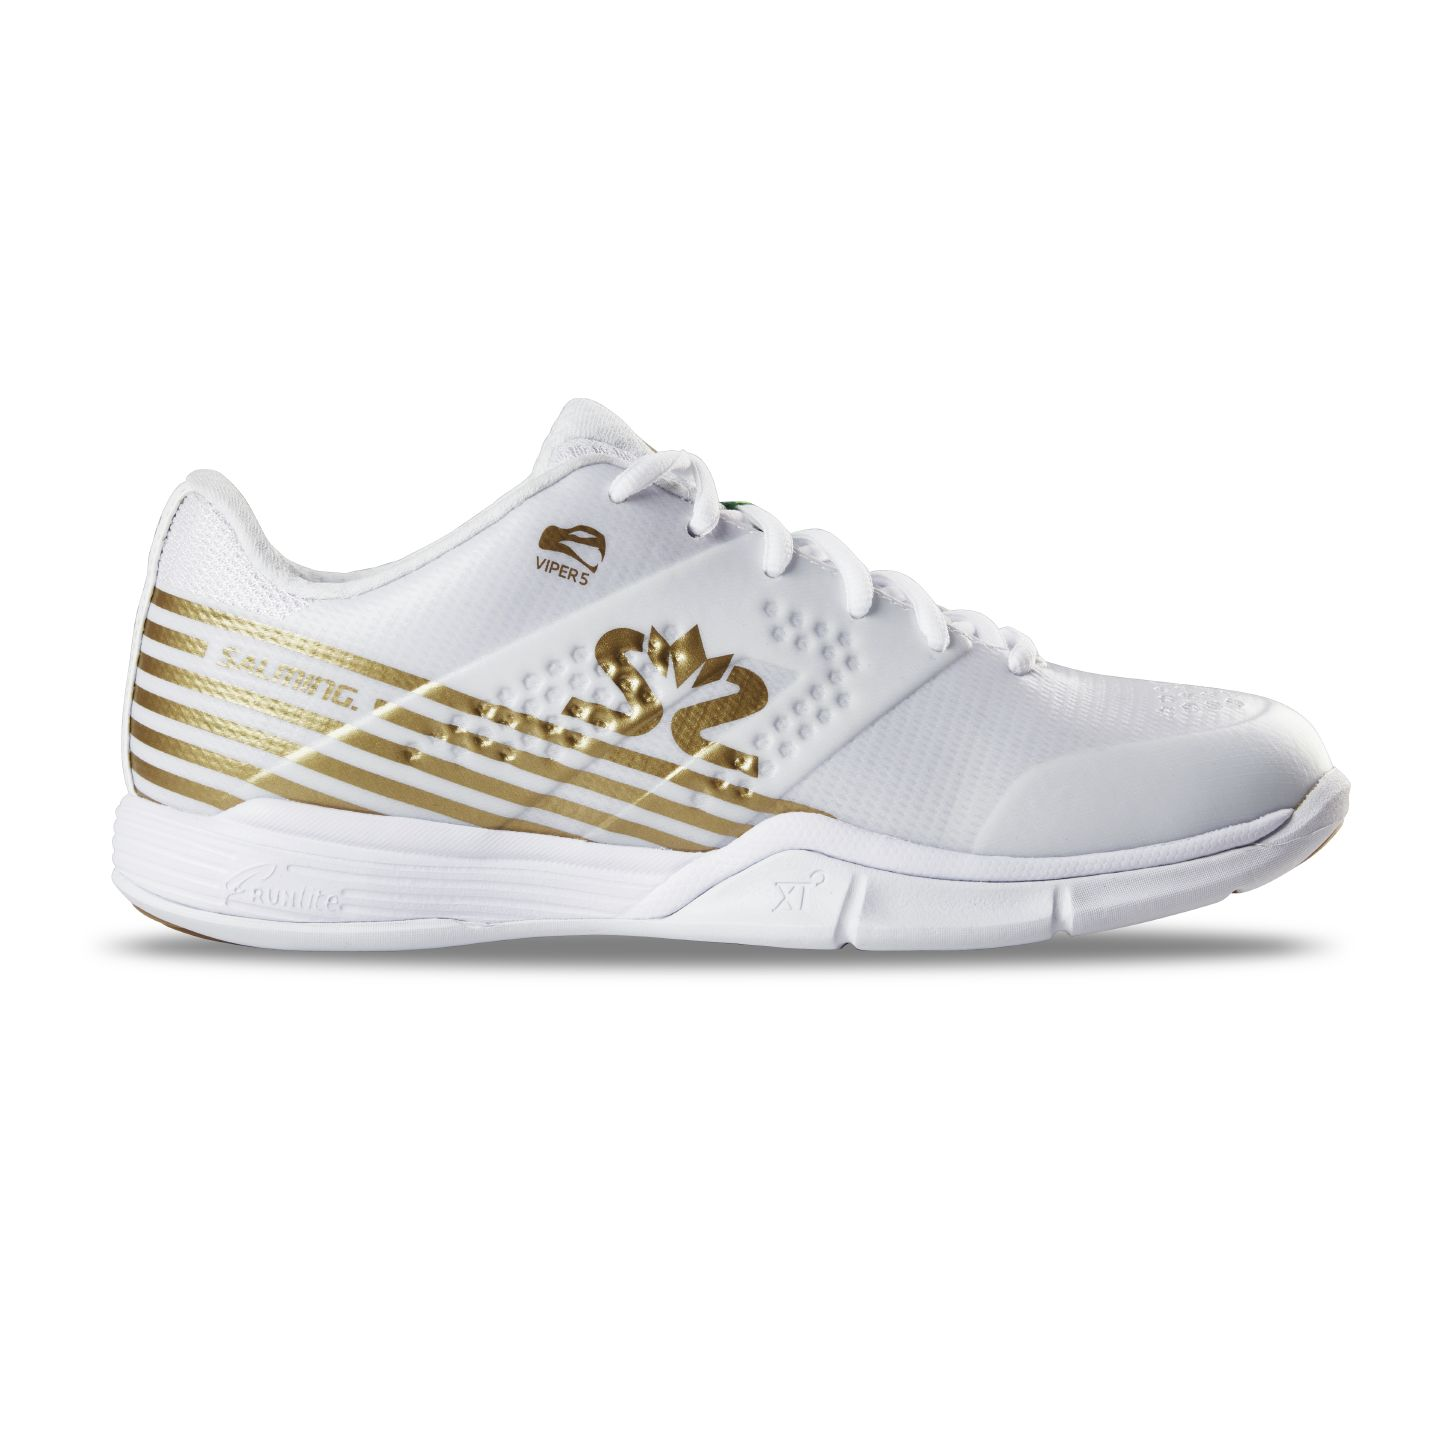 Salming Viper 5 Shoe Women White/Gold 5 UK - 38 EUR - 24 cm